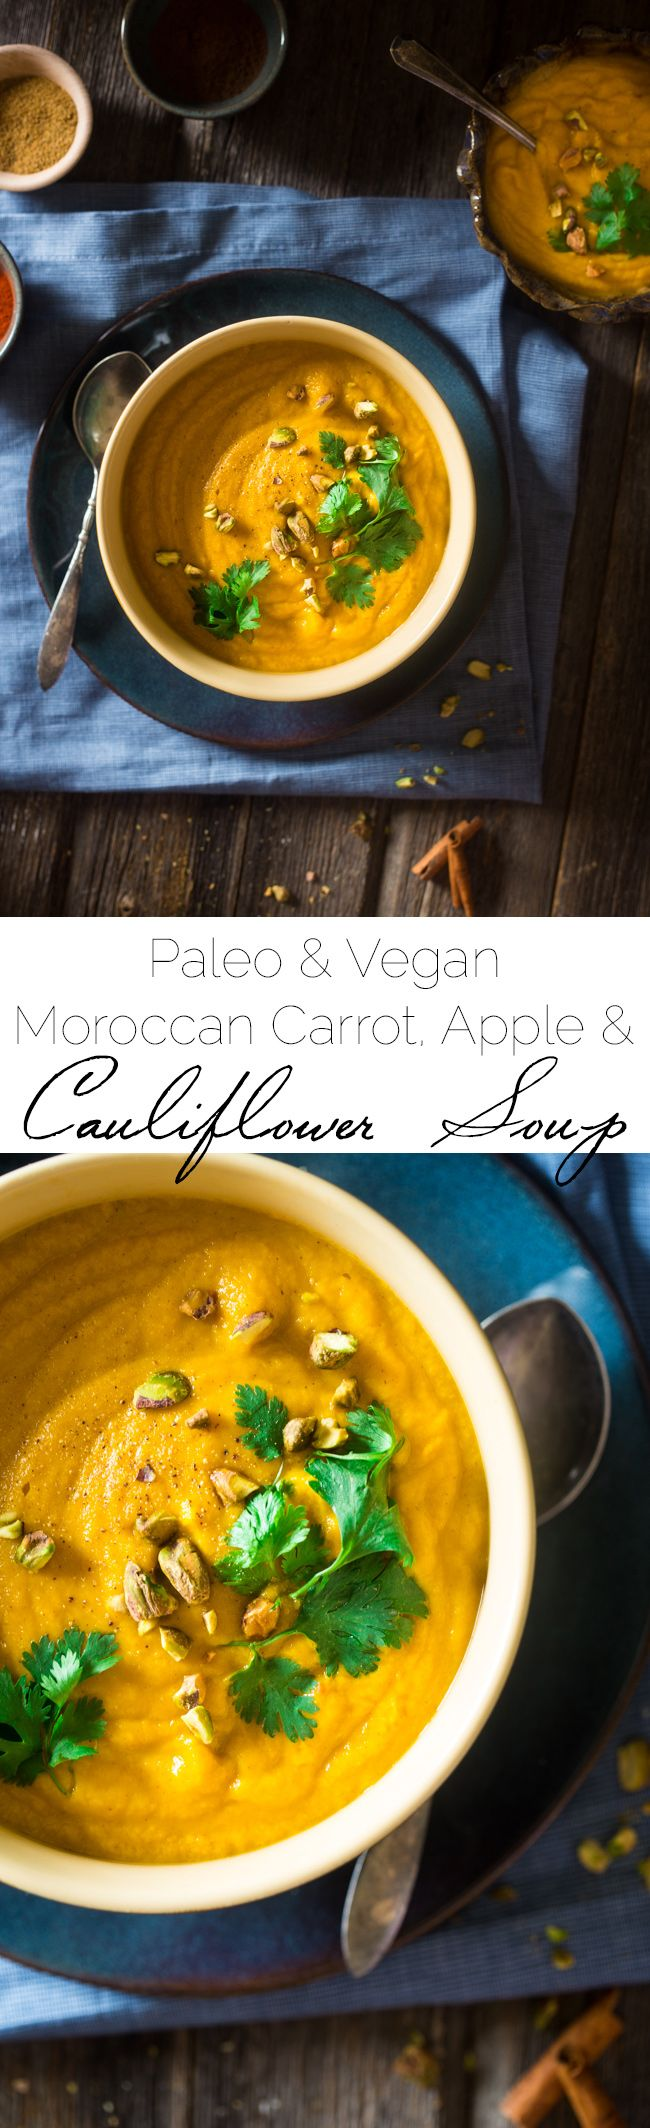 Vegan + Paleo Moroccan Apple, Carrot and Pistachio Cauliflower Soup - This easy, healthy soup is blended with spicy Moroccan flavors, carrots, apples and pistachio cream for an easy, vegan and paleo-friendly fall meal! | Foodfaithfitness.com | @FoodFaithFit